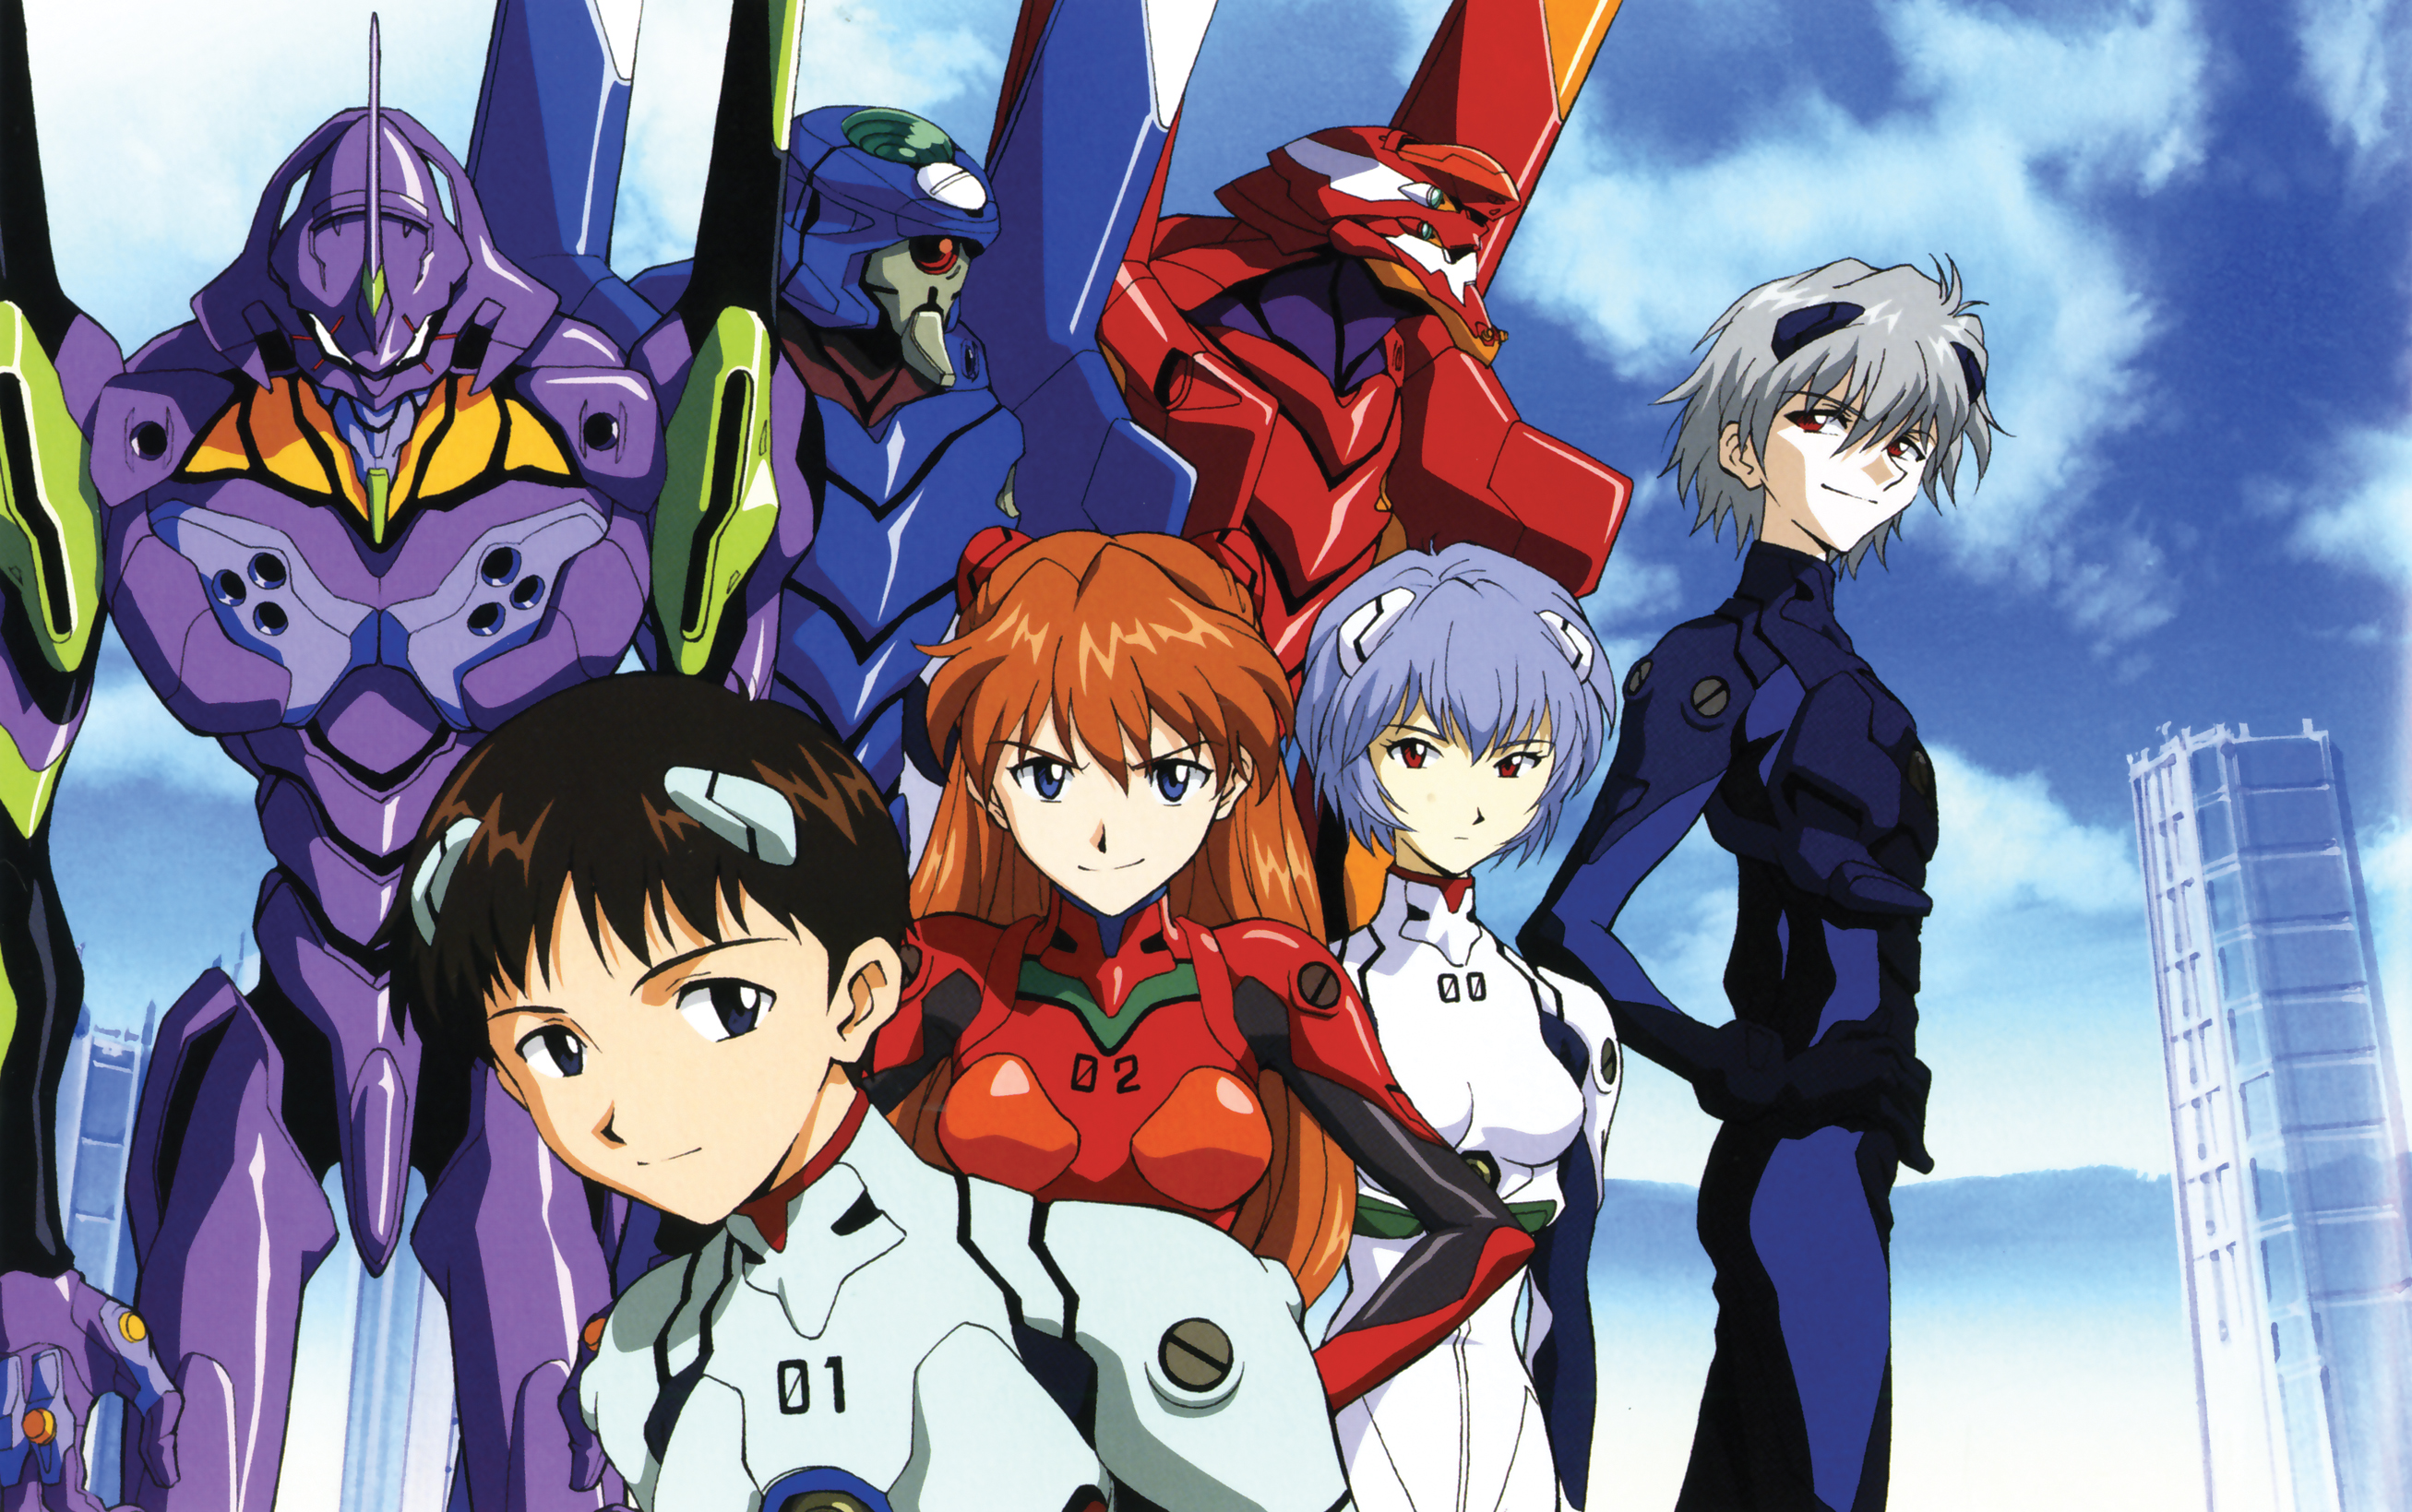 Fans-Vote-on Which-Anime-Would-They-Rather-Not-Be-the-Hero-Of_Haruhichan.com-Neon-Genesis-Evangelion